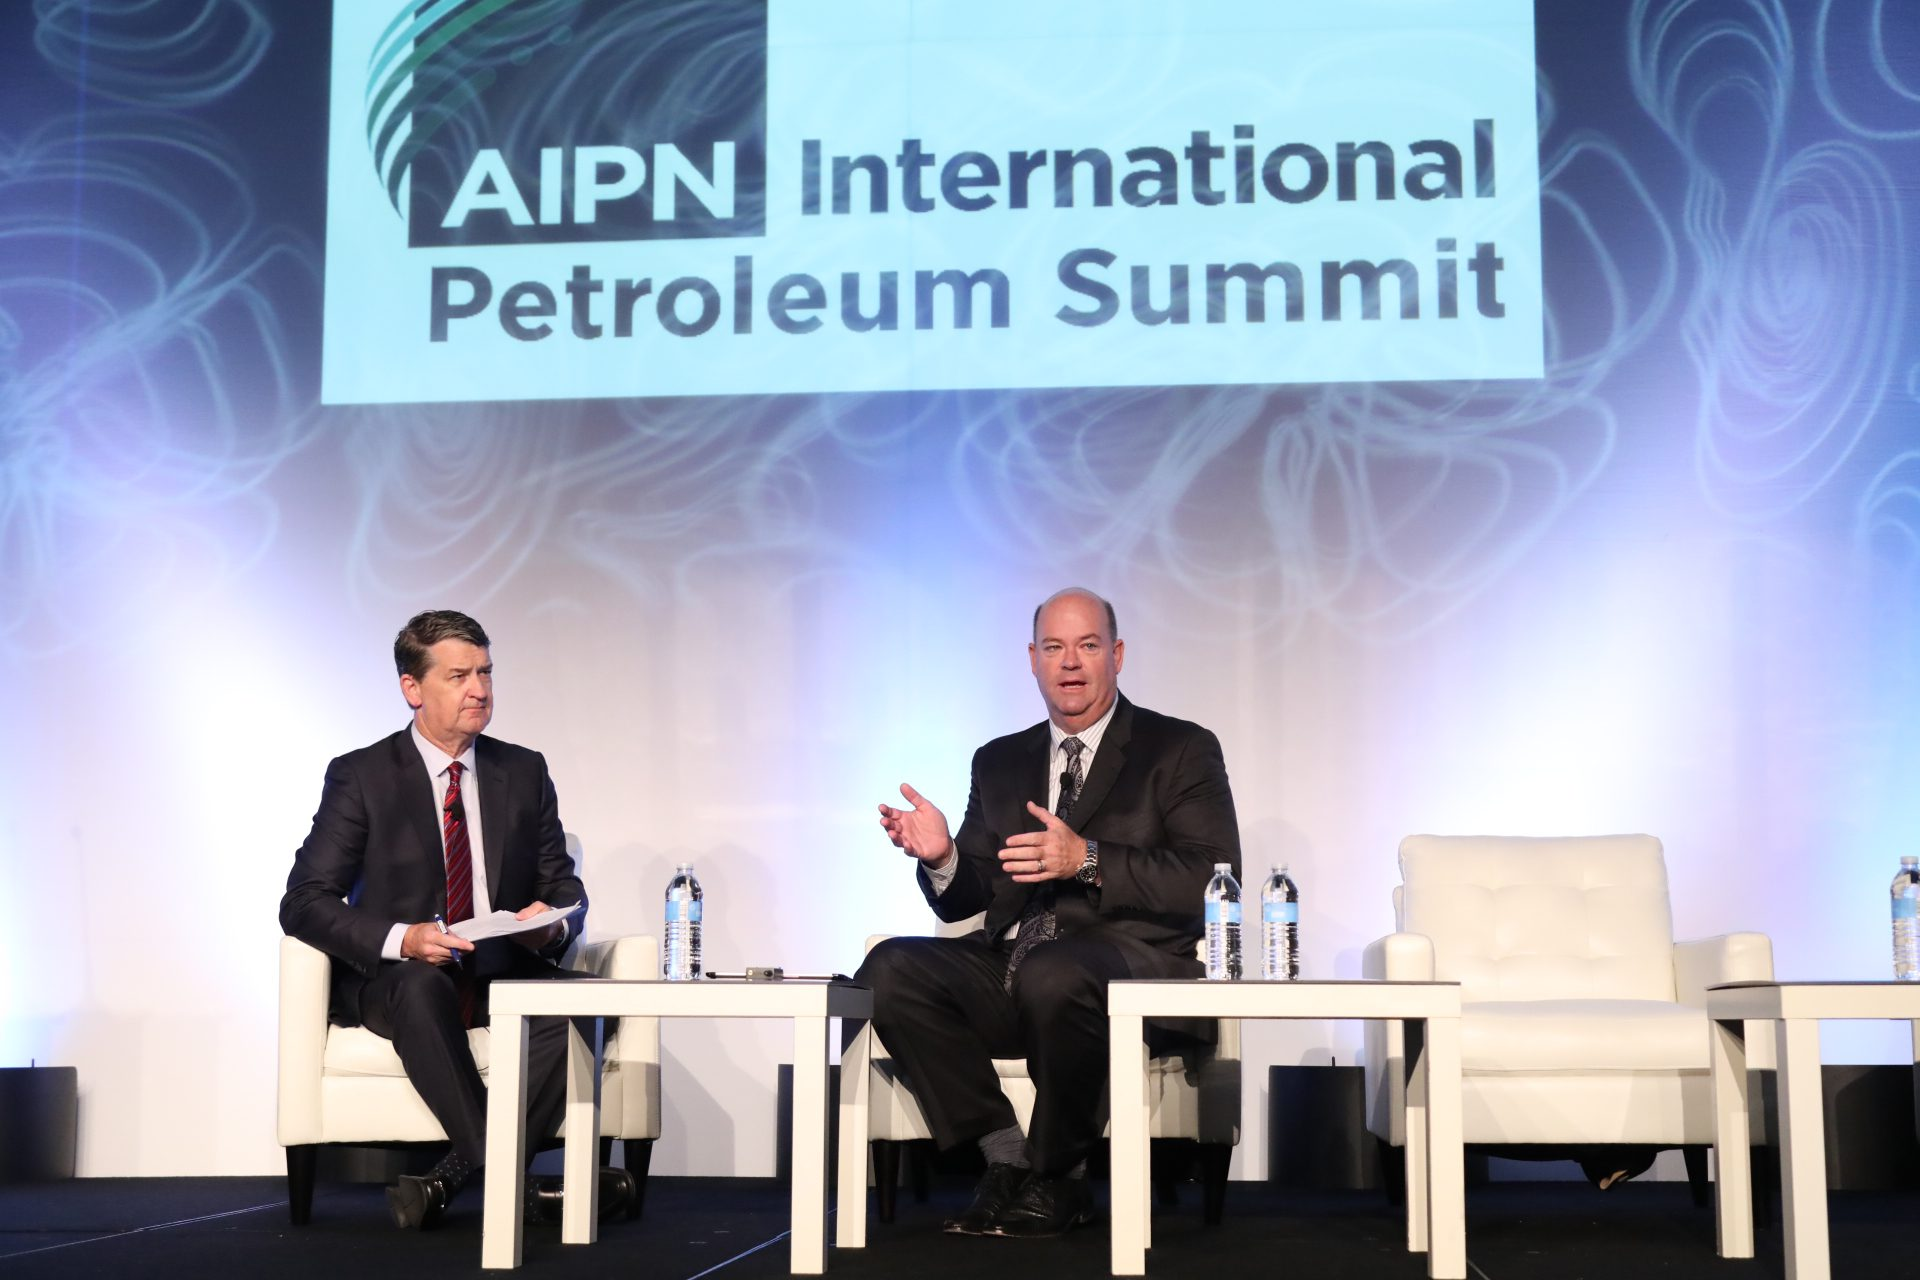 Oil & Gas leaders look for cost reduction and efficiency gains